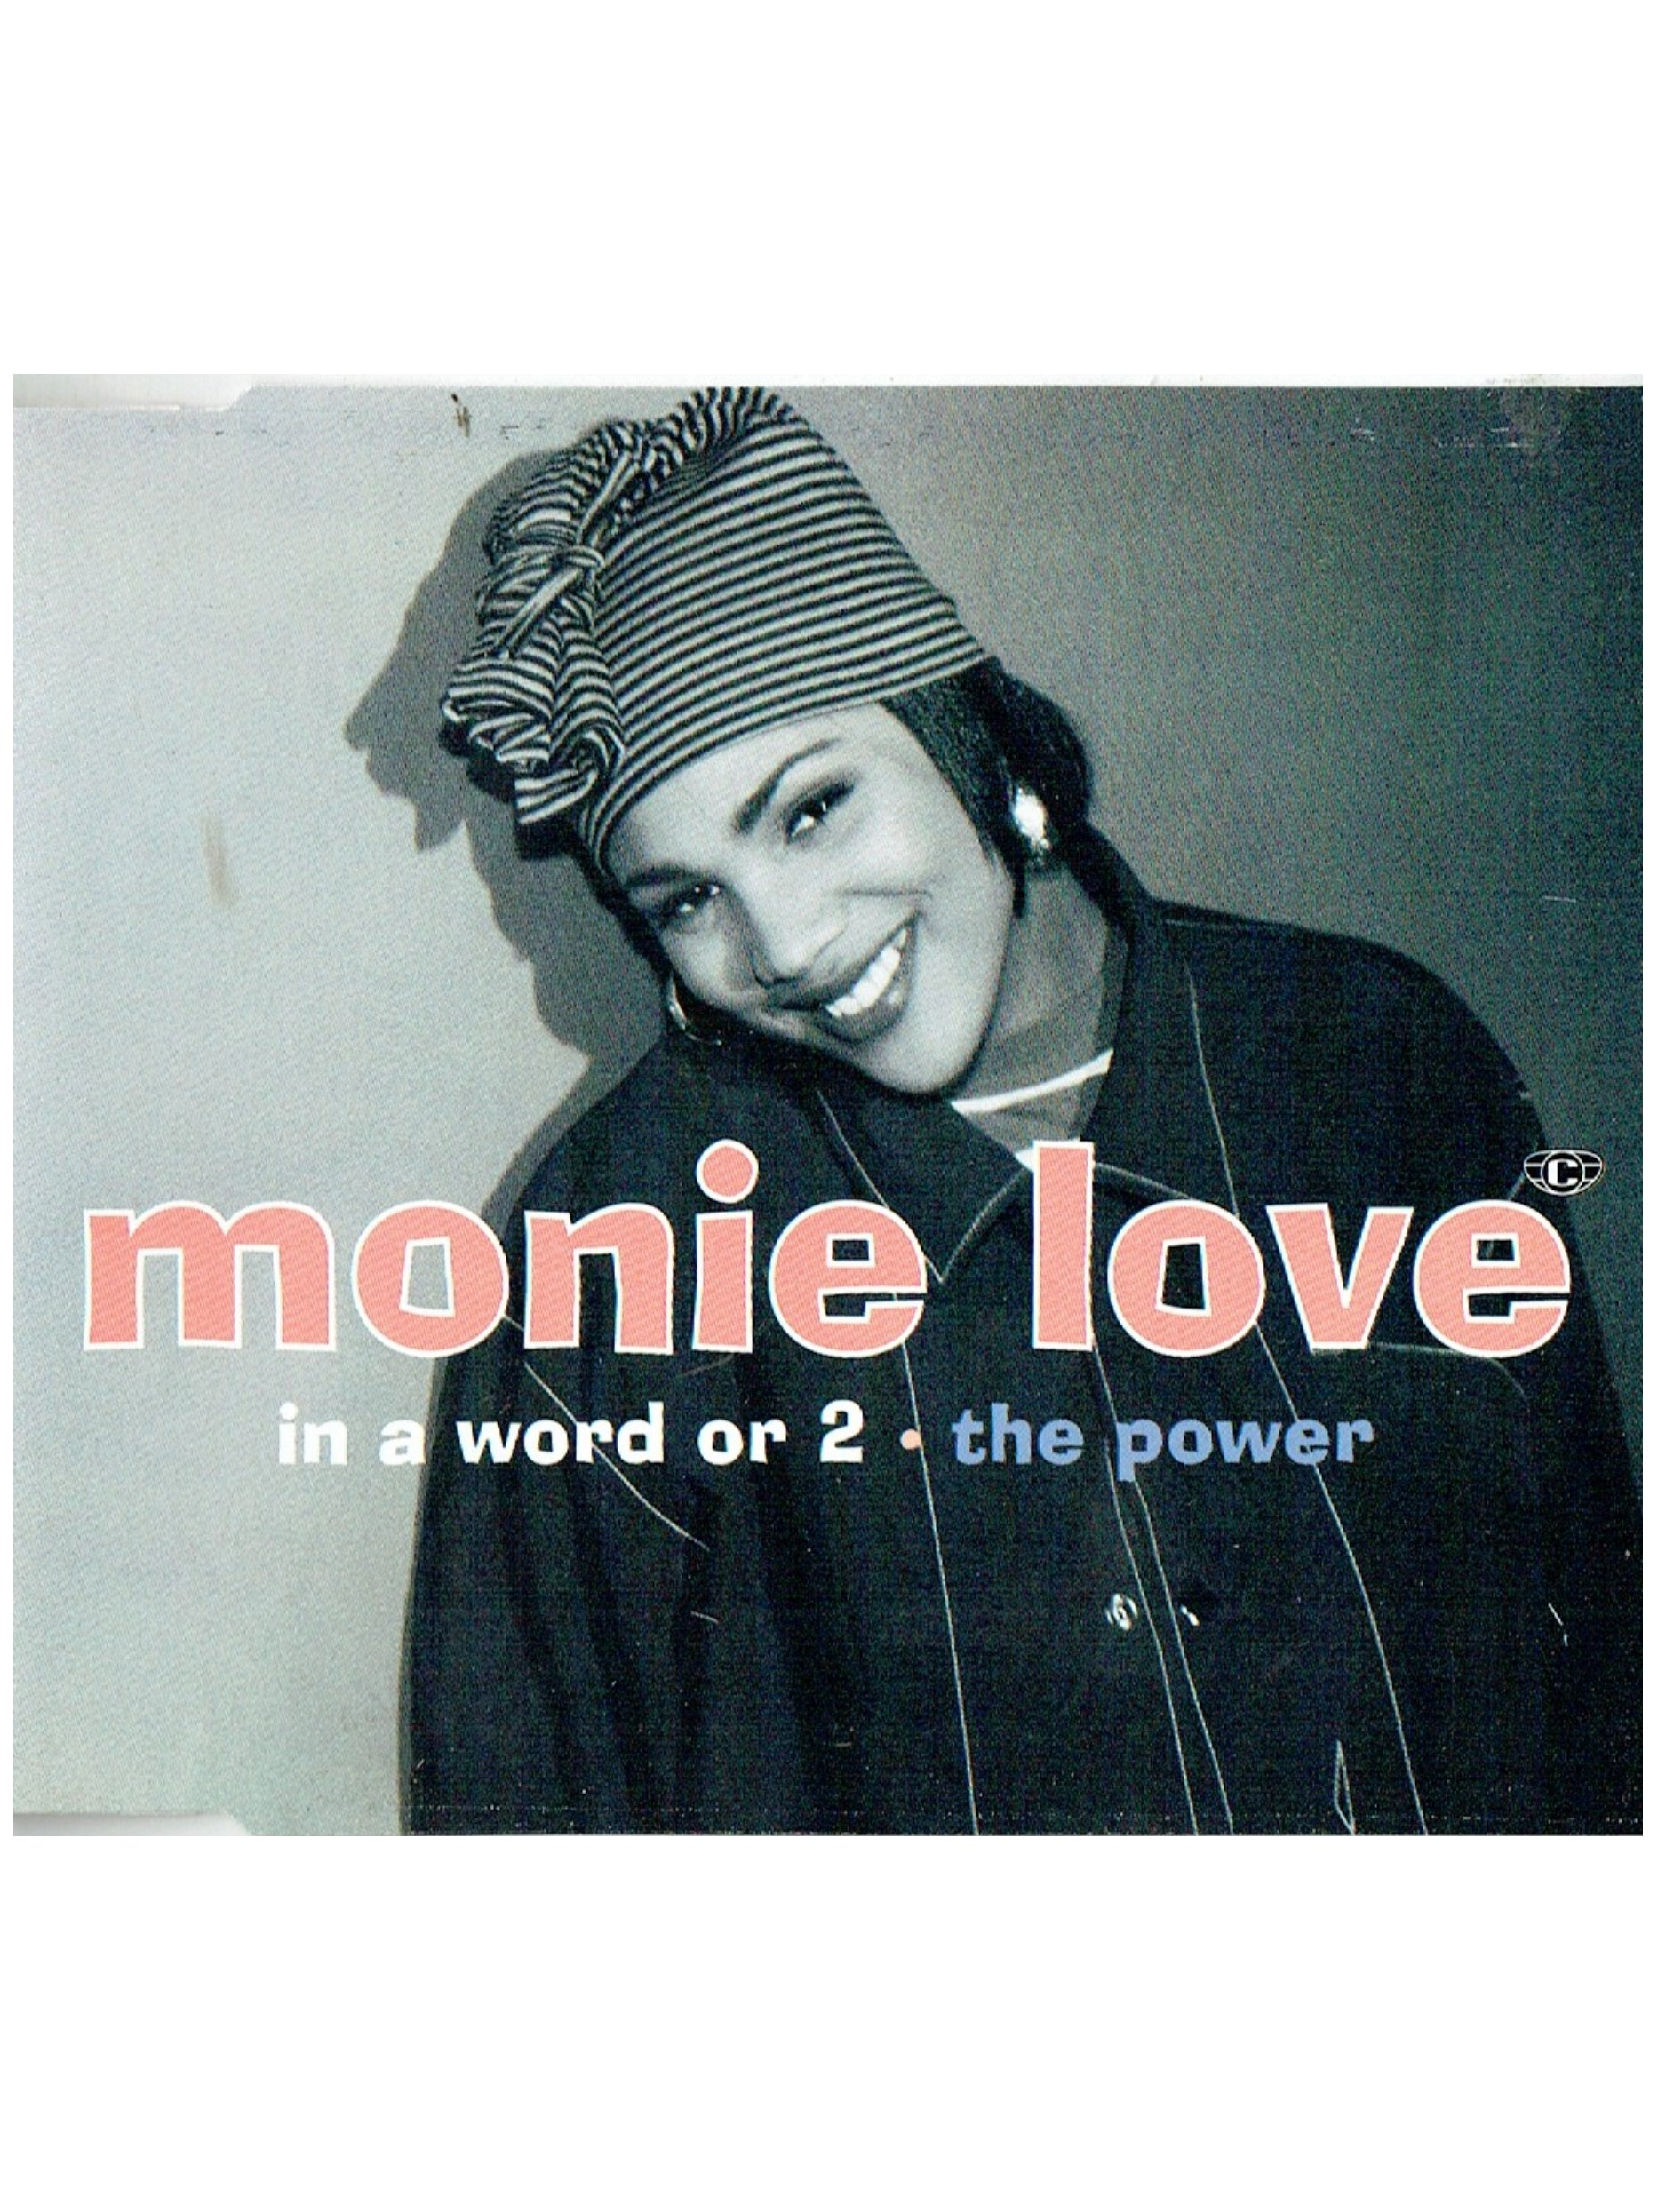 Monie Love In A Word Or 2 CD Single Original 1993 UK Release Written By Prince